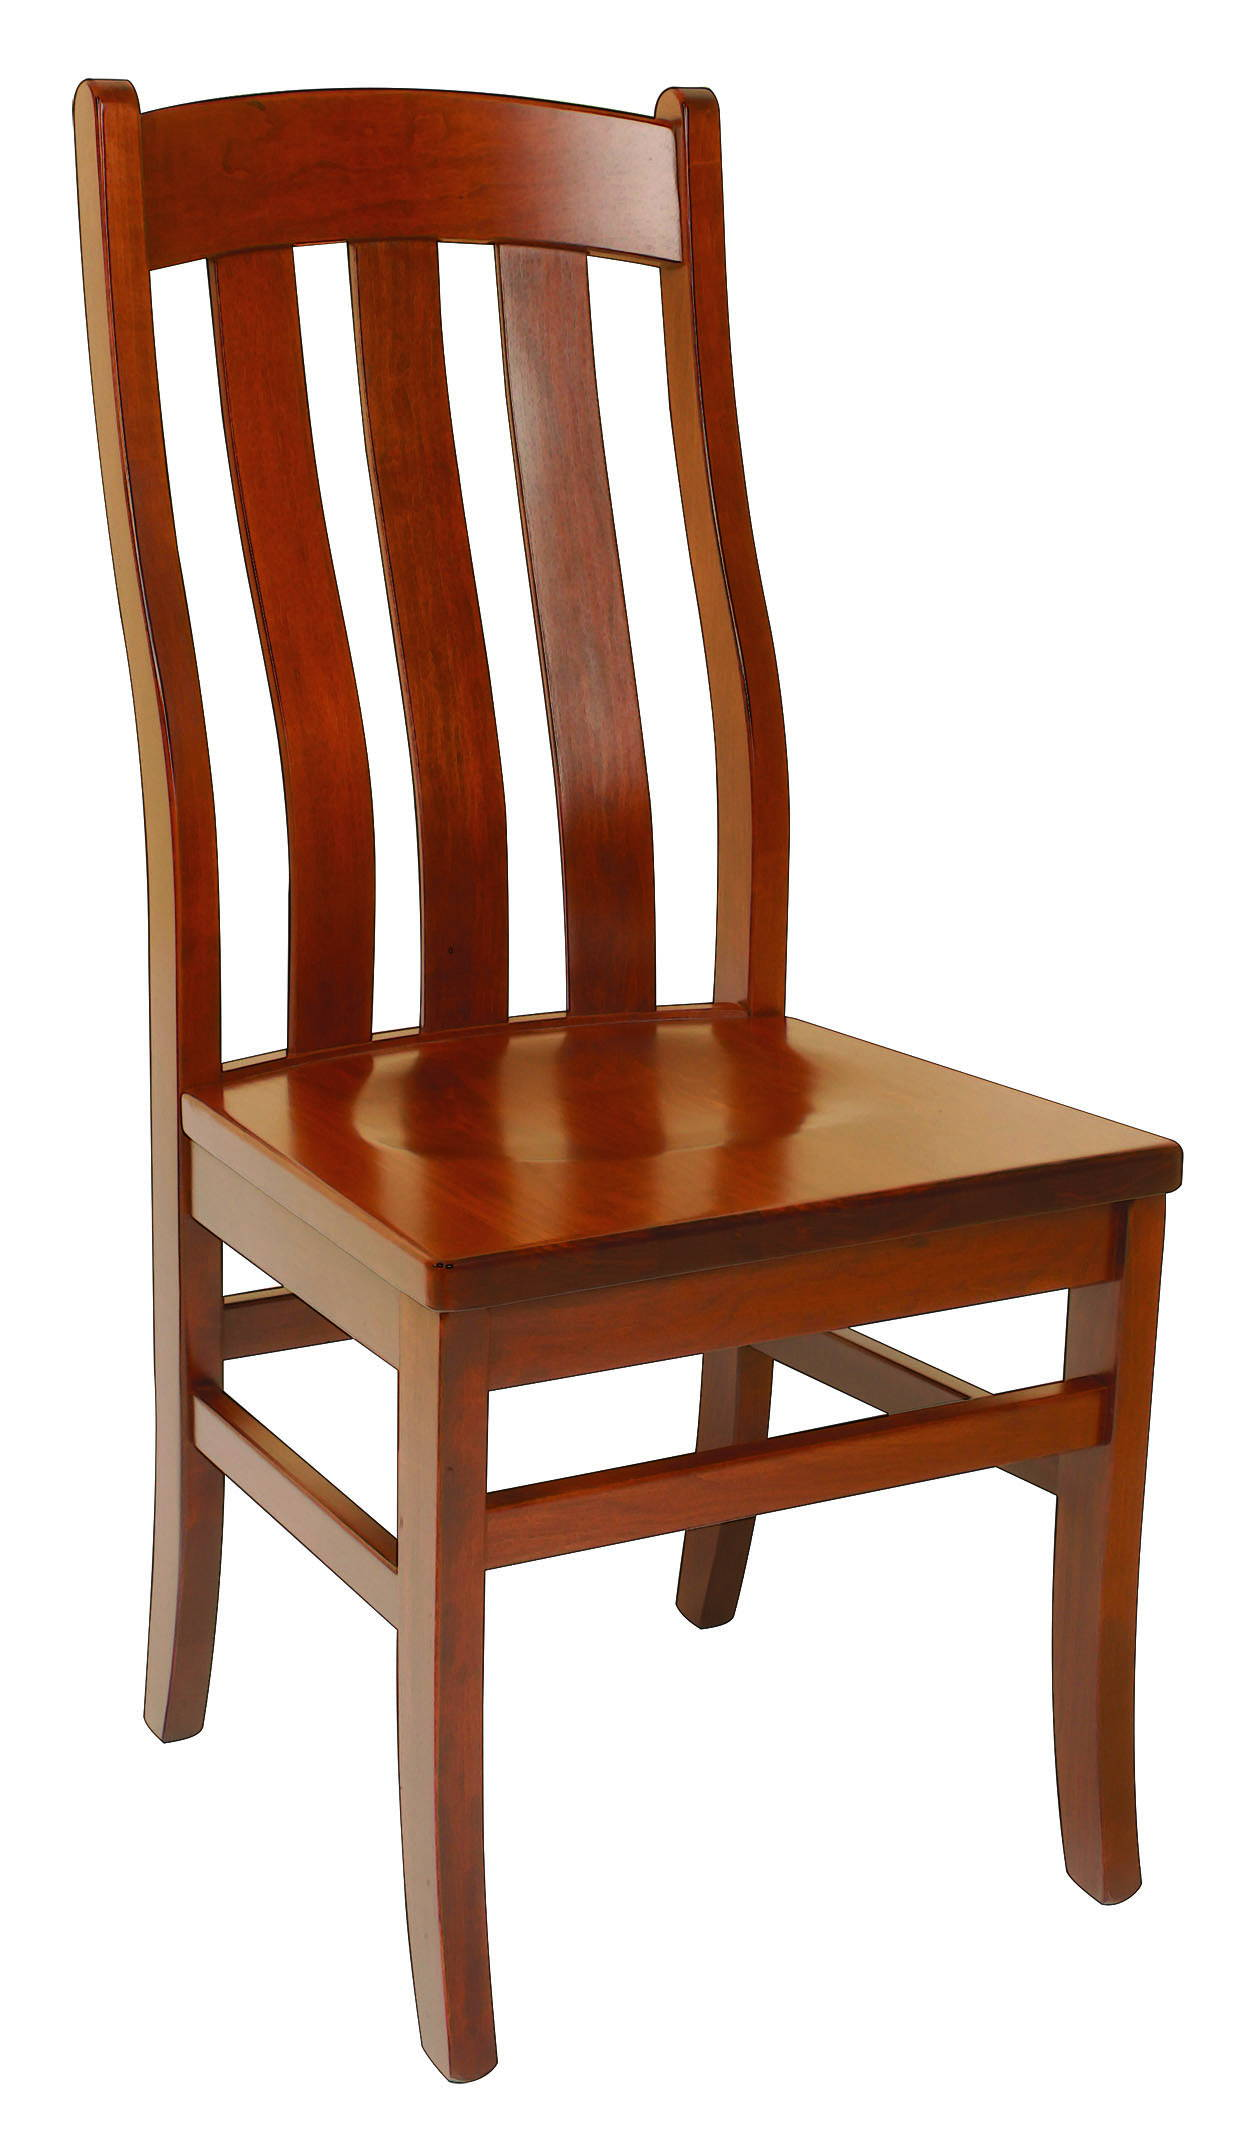 Fostoria Solid Wood, Handcrafted Kitchen Chair or DIning Chair from Harvest Home Interiors Amish Furniture